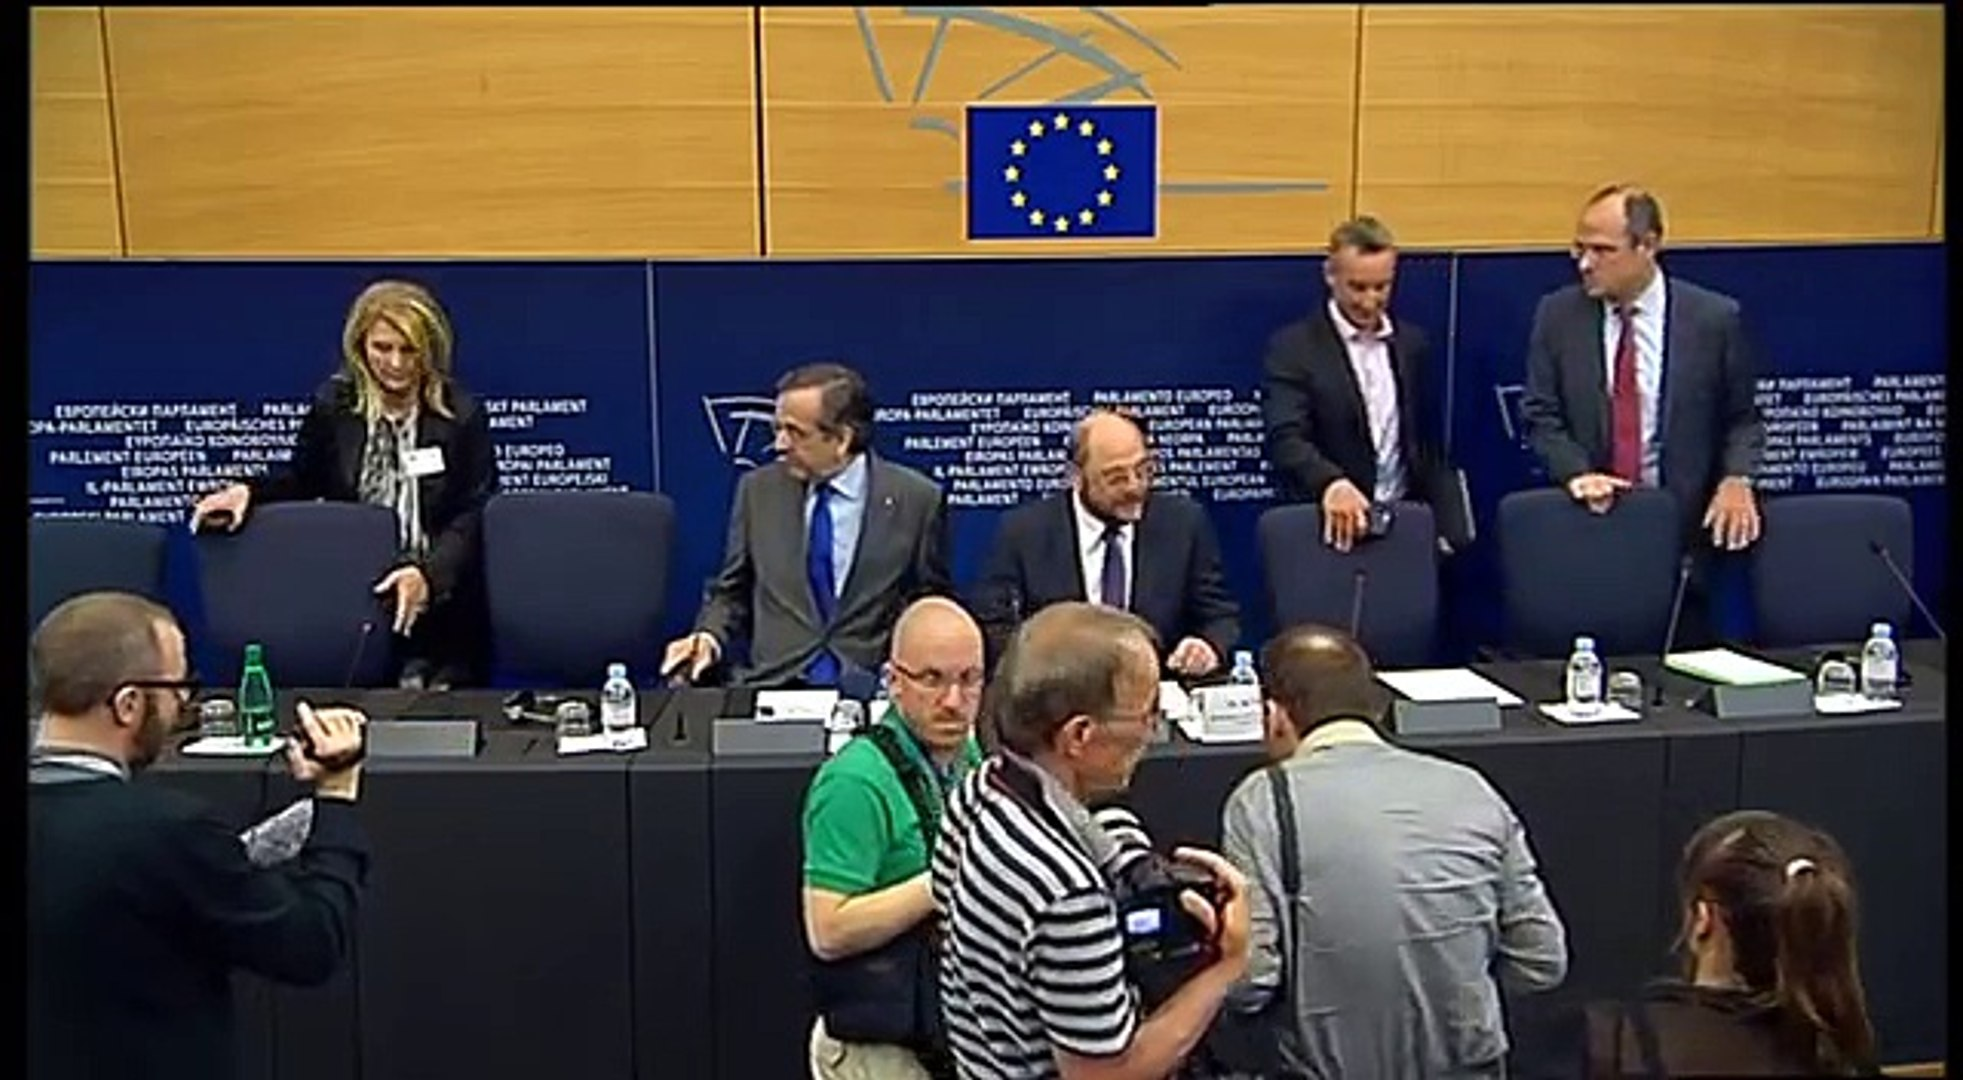 Review of the Greek Presidency: press conference by Martin Schulz and Greek PM Antonis Samaras